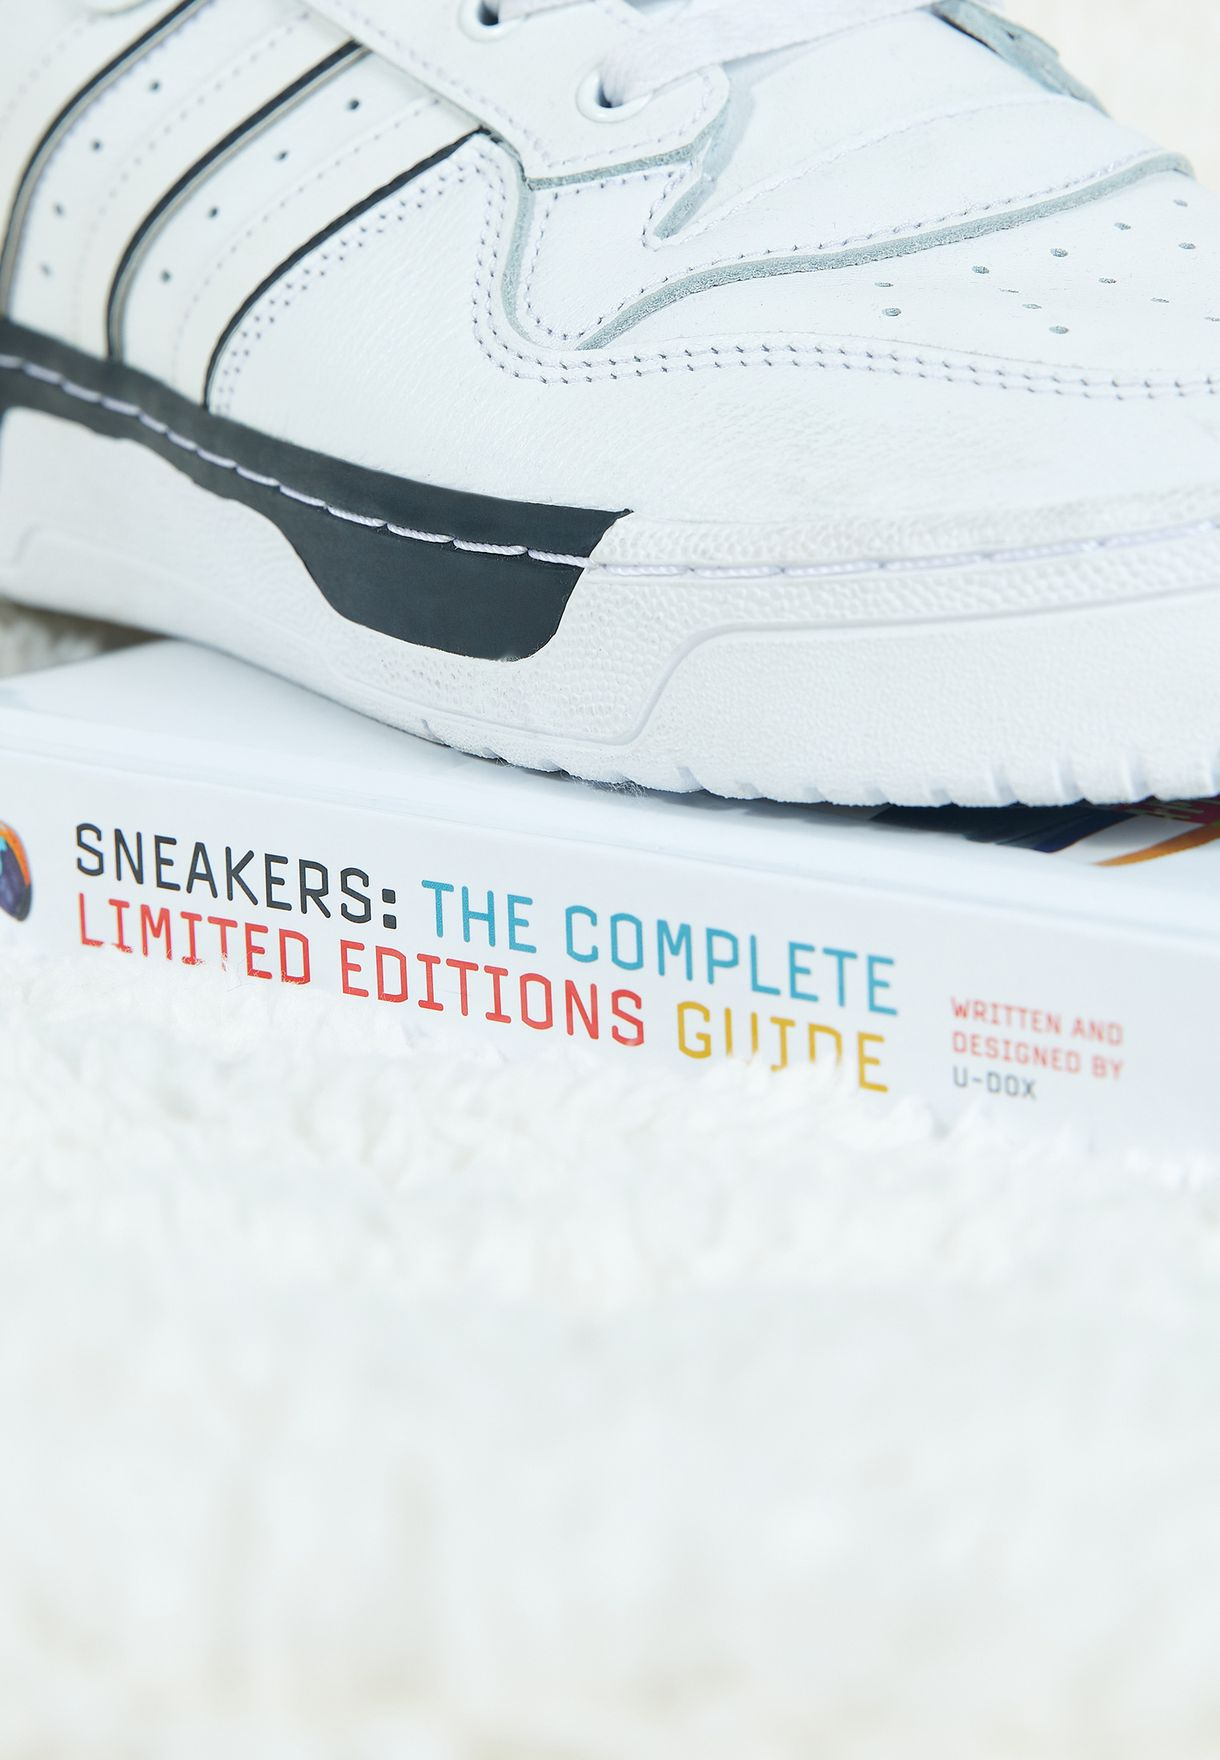 Sneakers: The Complete Limited Editions Guide